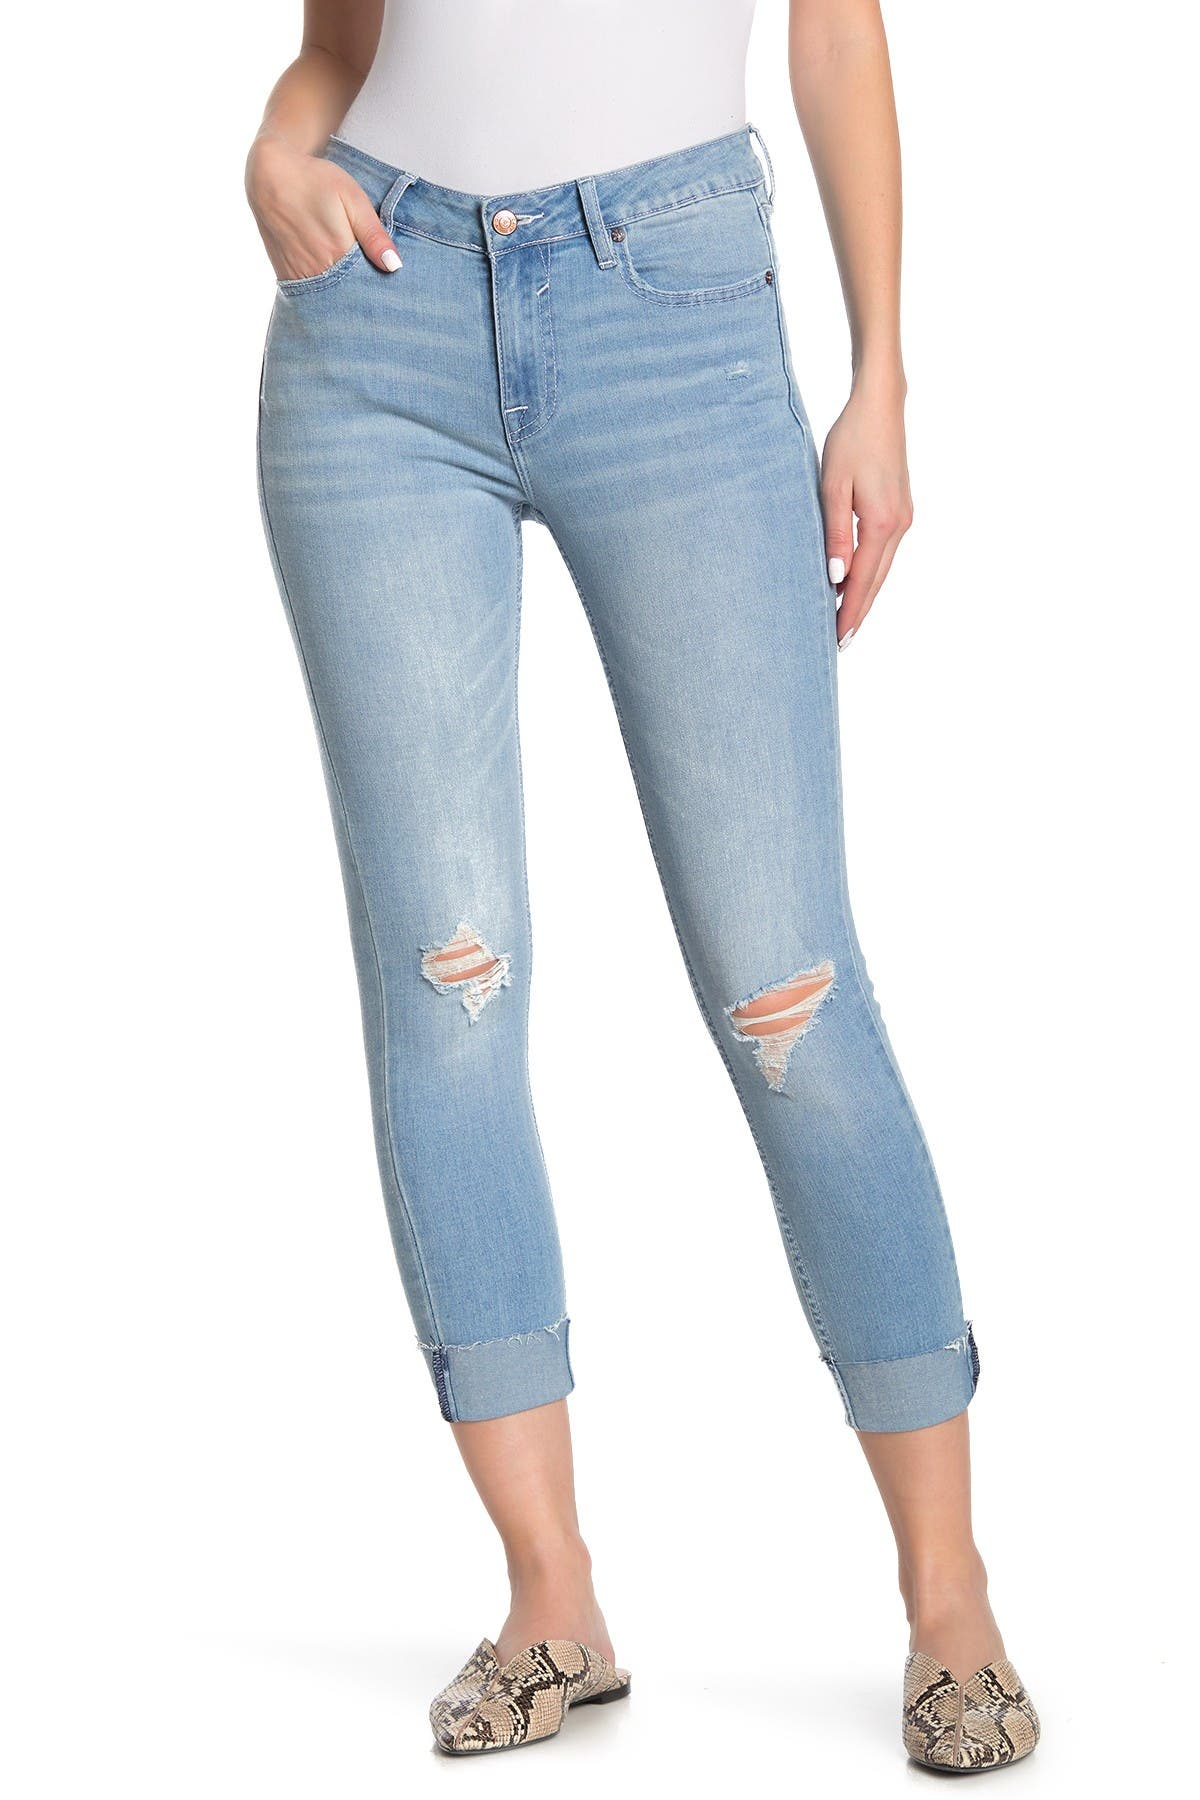 Image of Vigoss Marley Distressed Mid Rise Skinny Jeans